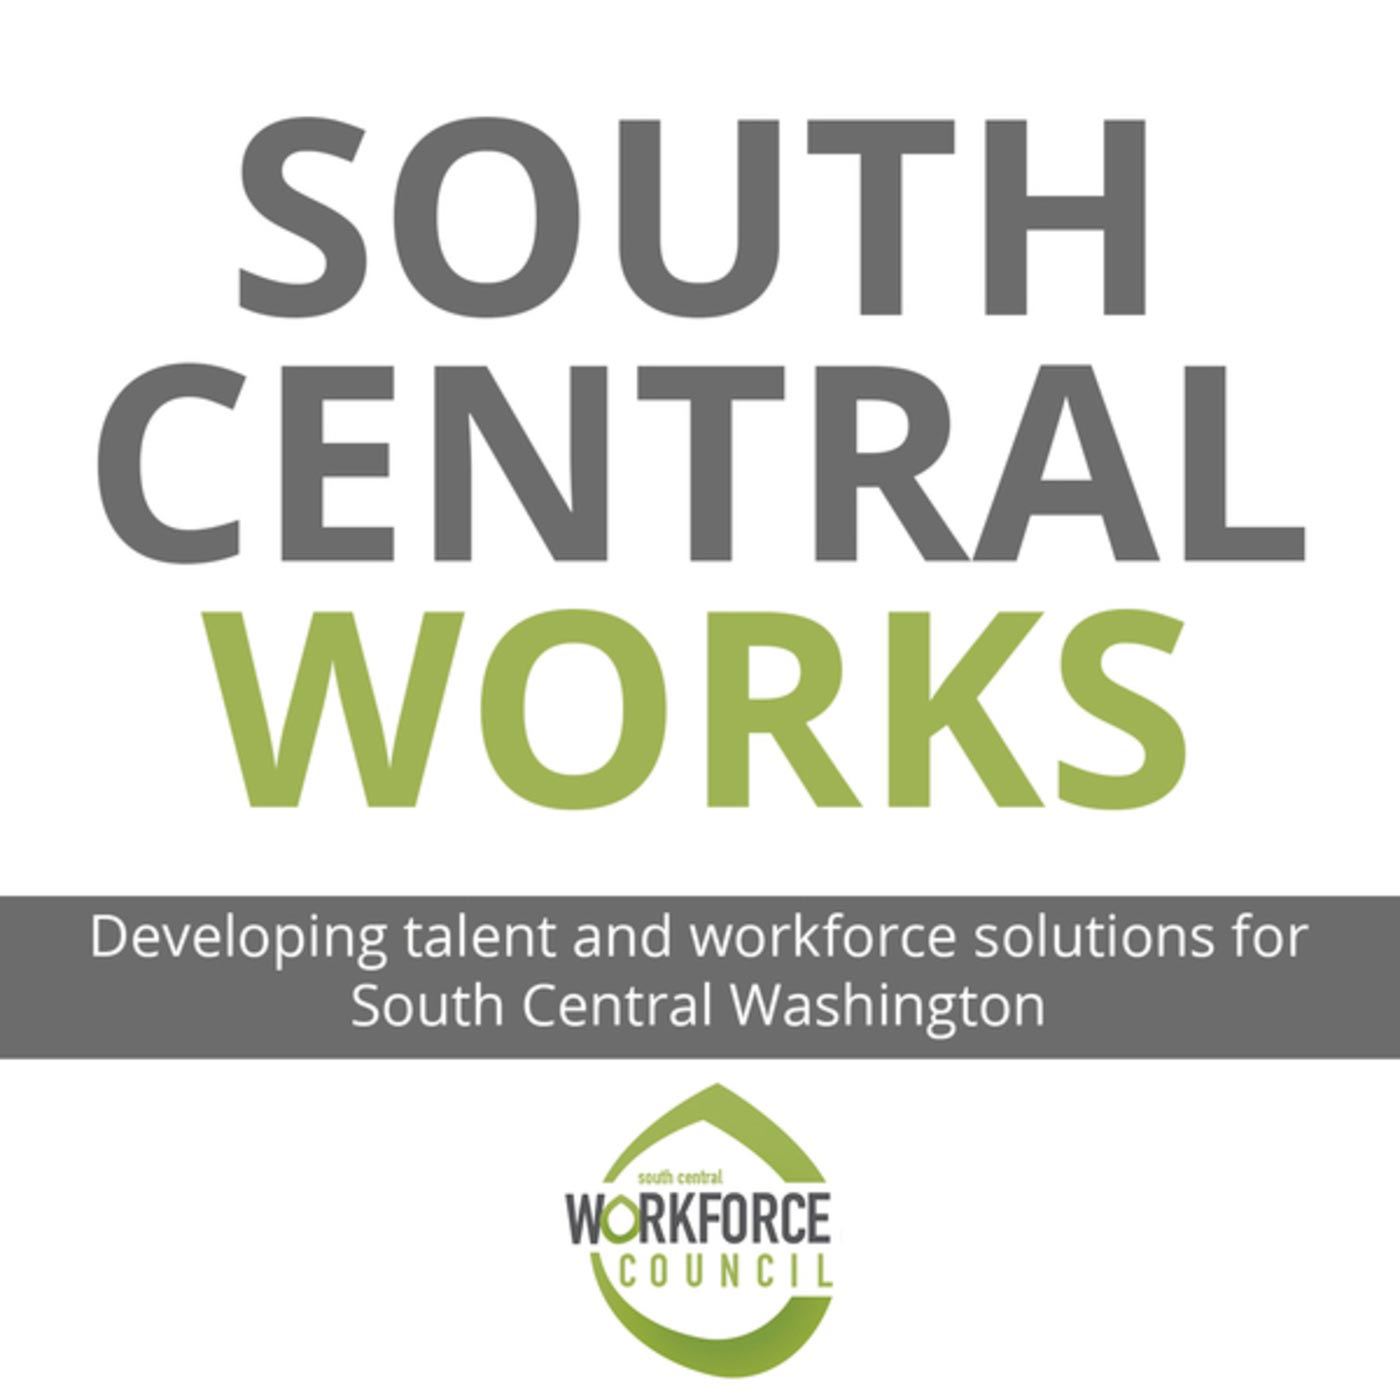 South Central Works